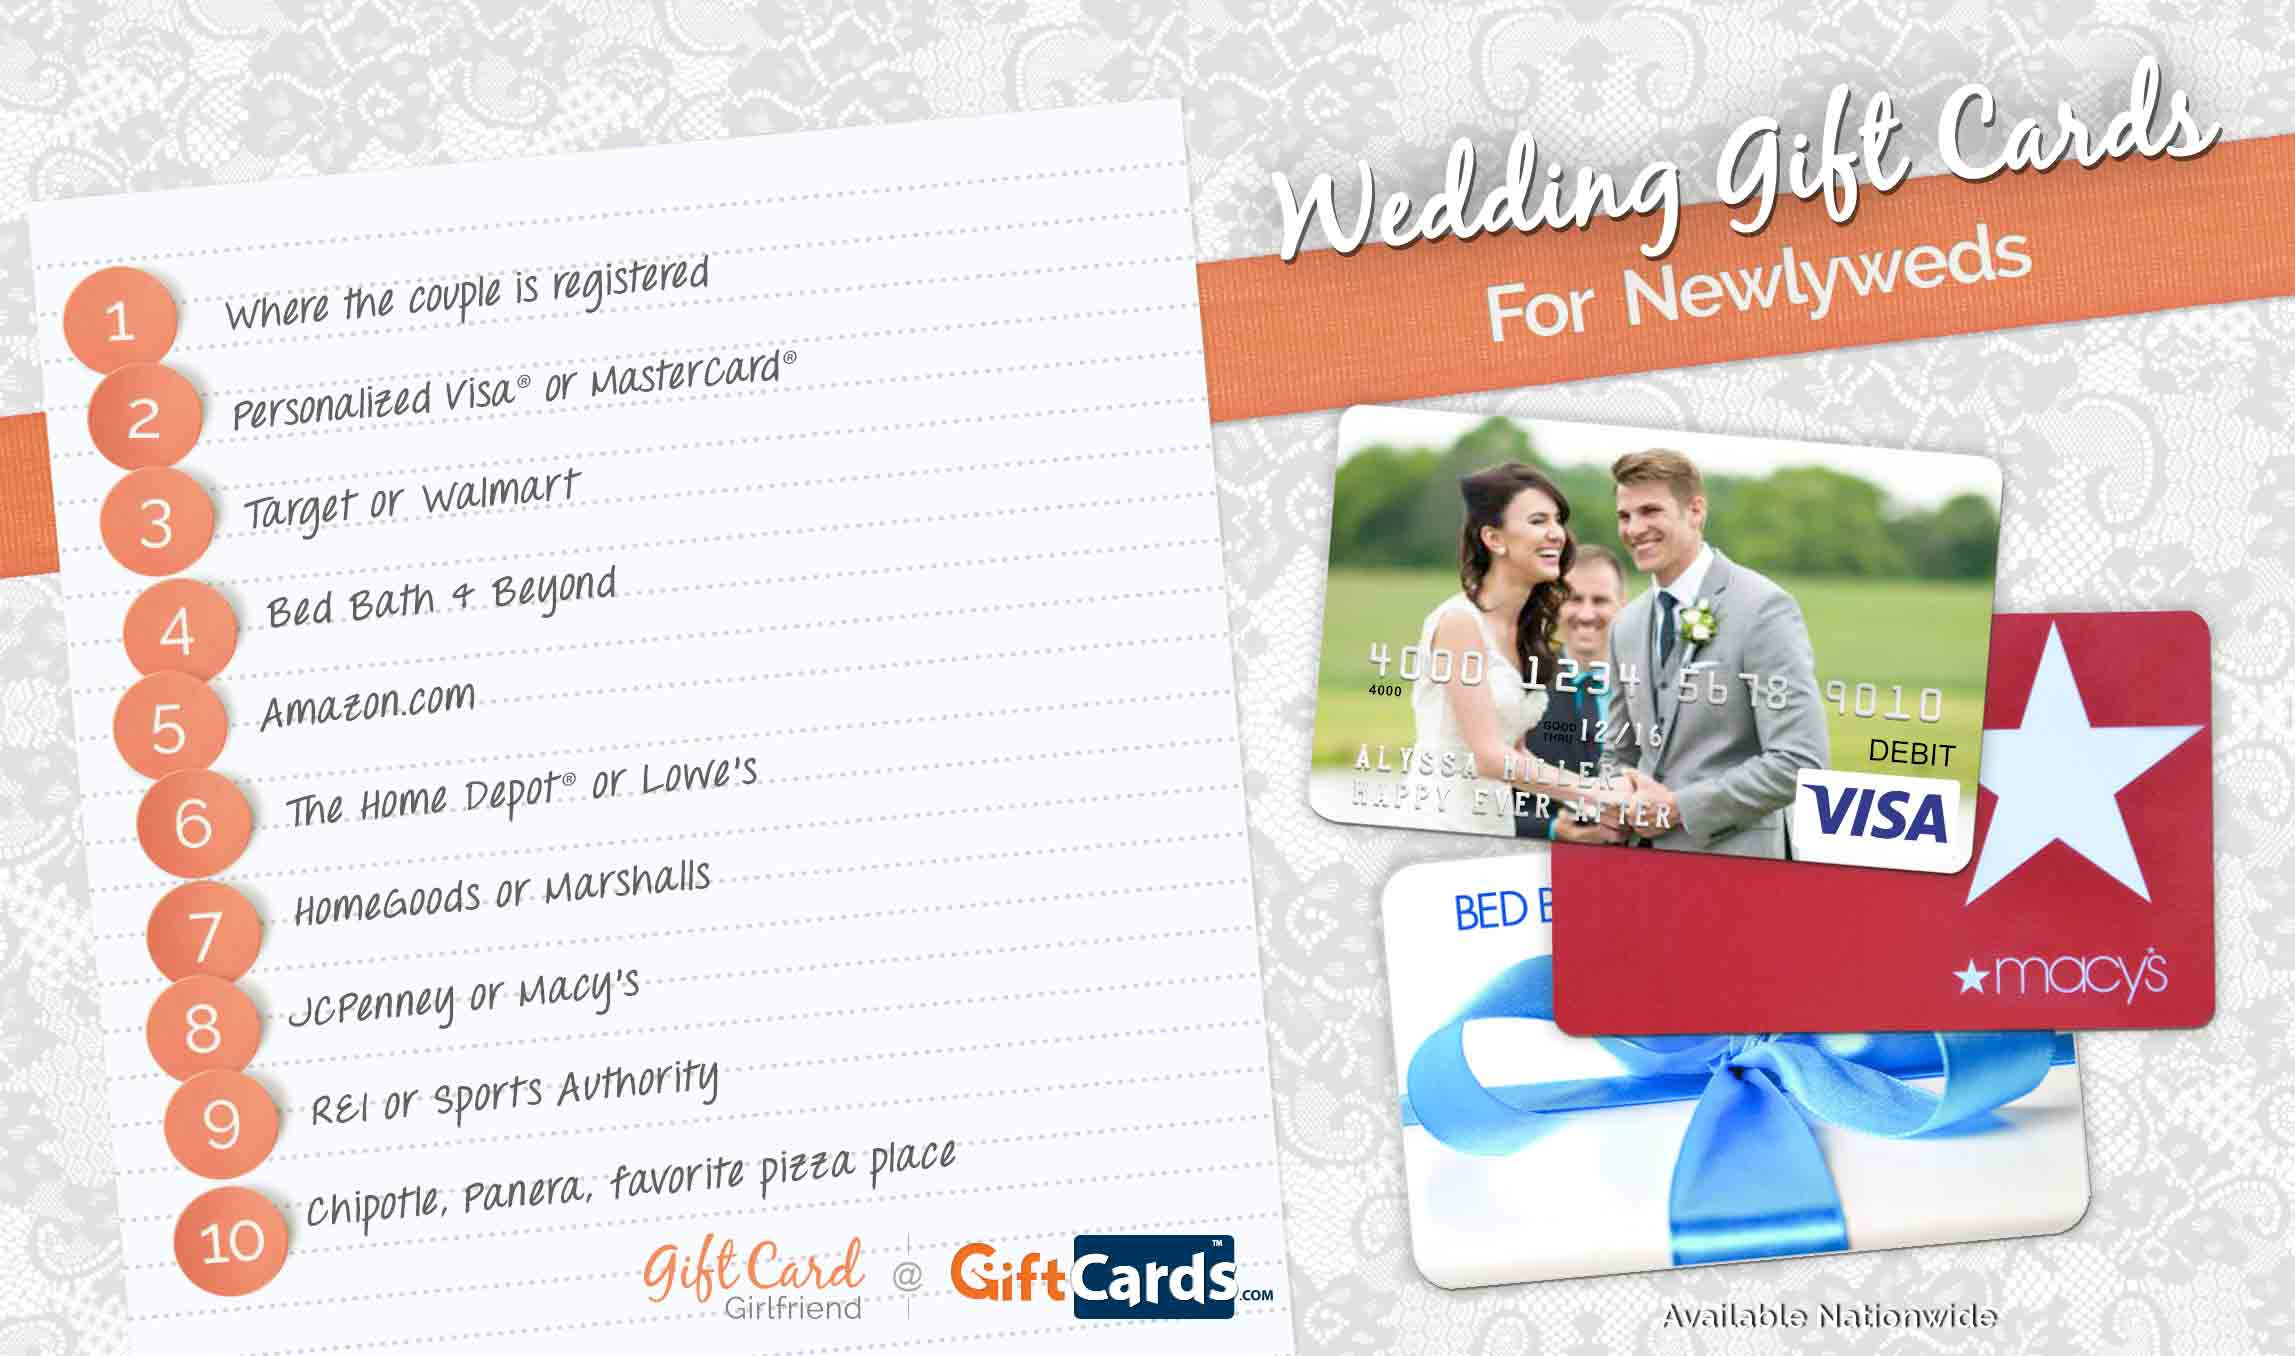 Top 10 Wedding Gift Cards to Buy for Newlyweds | GCG